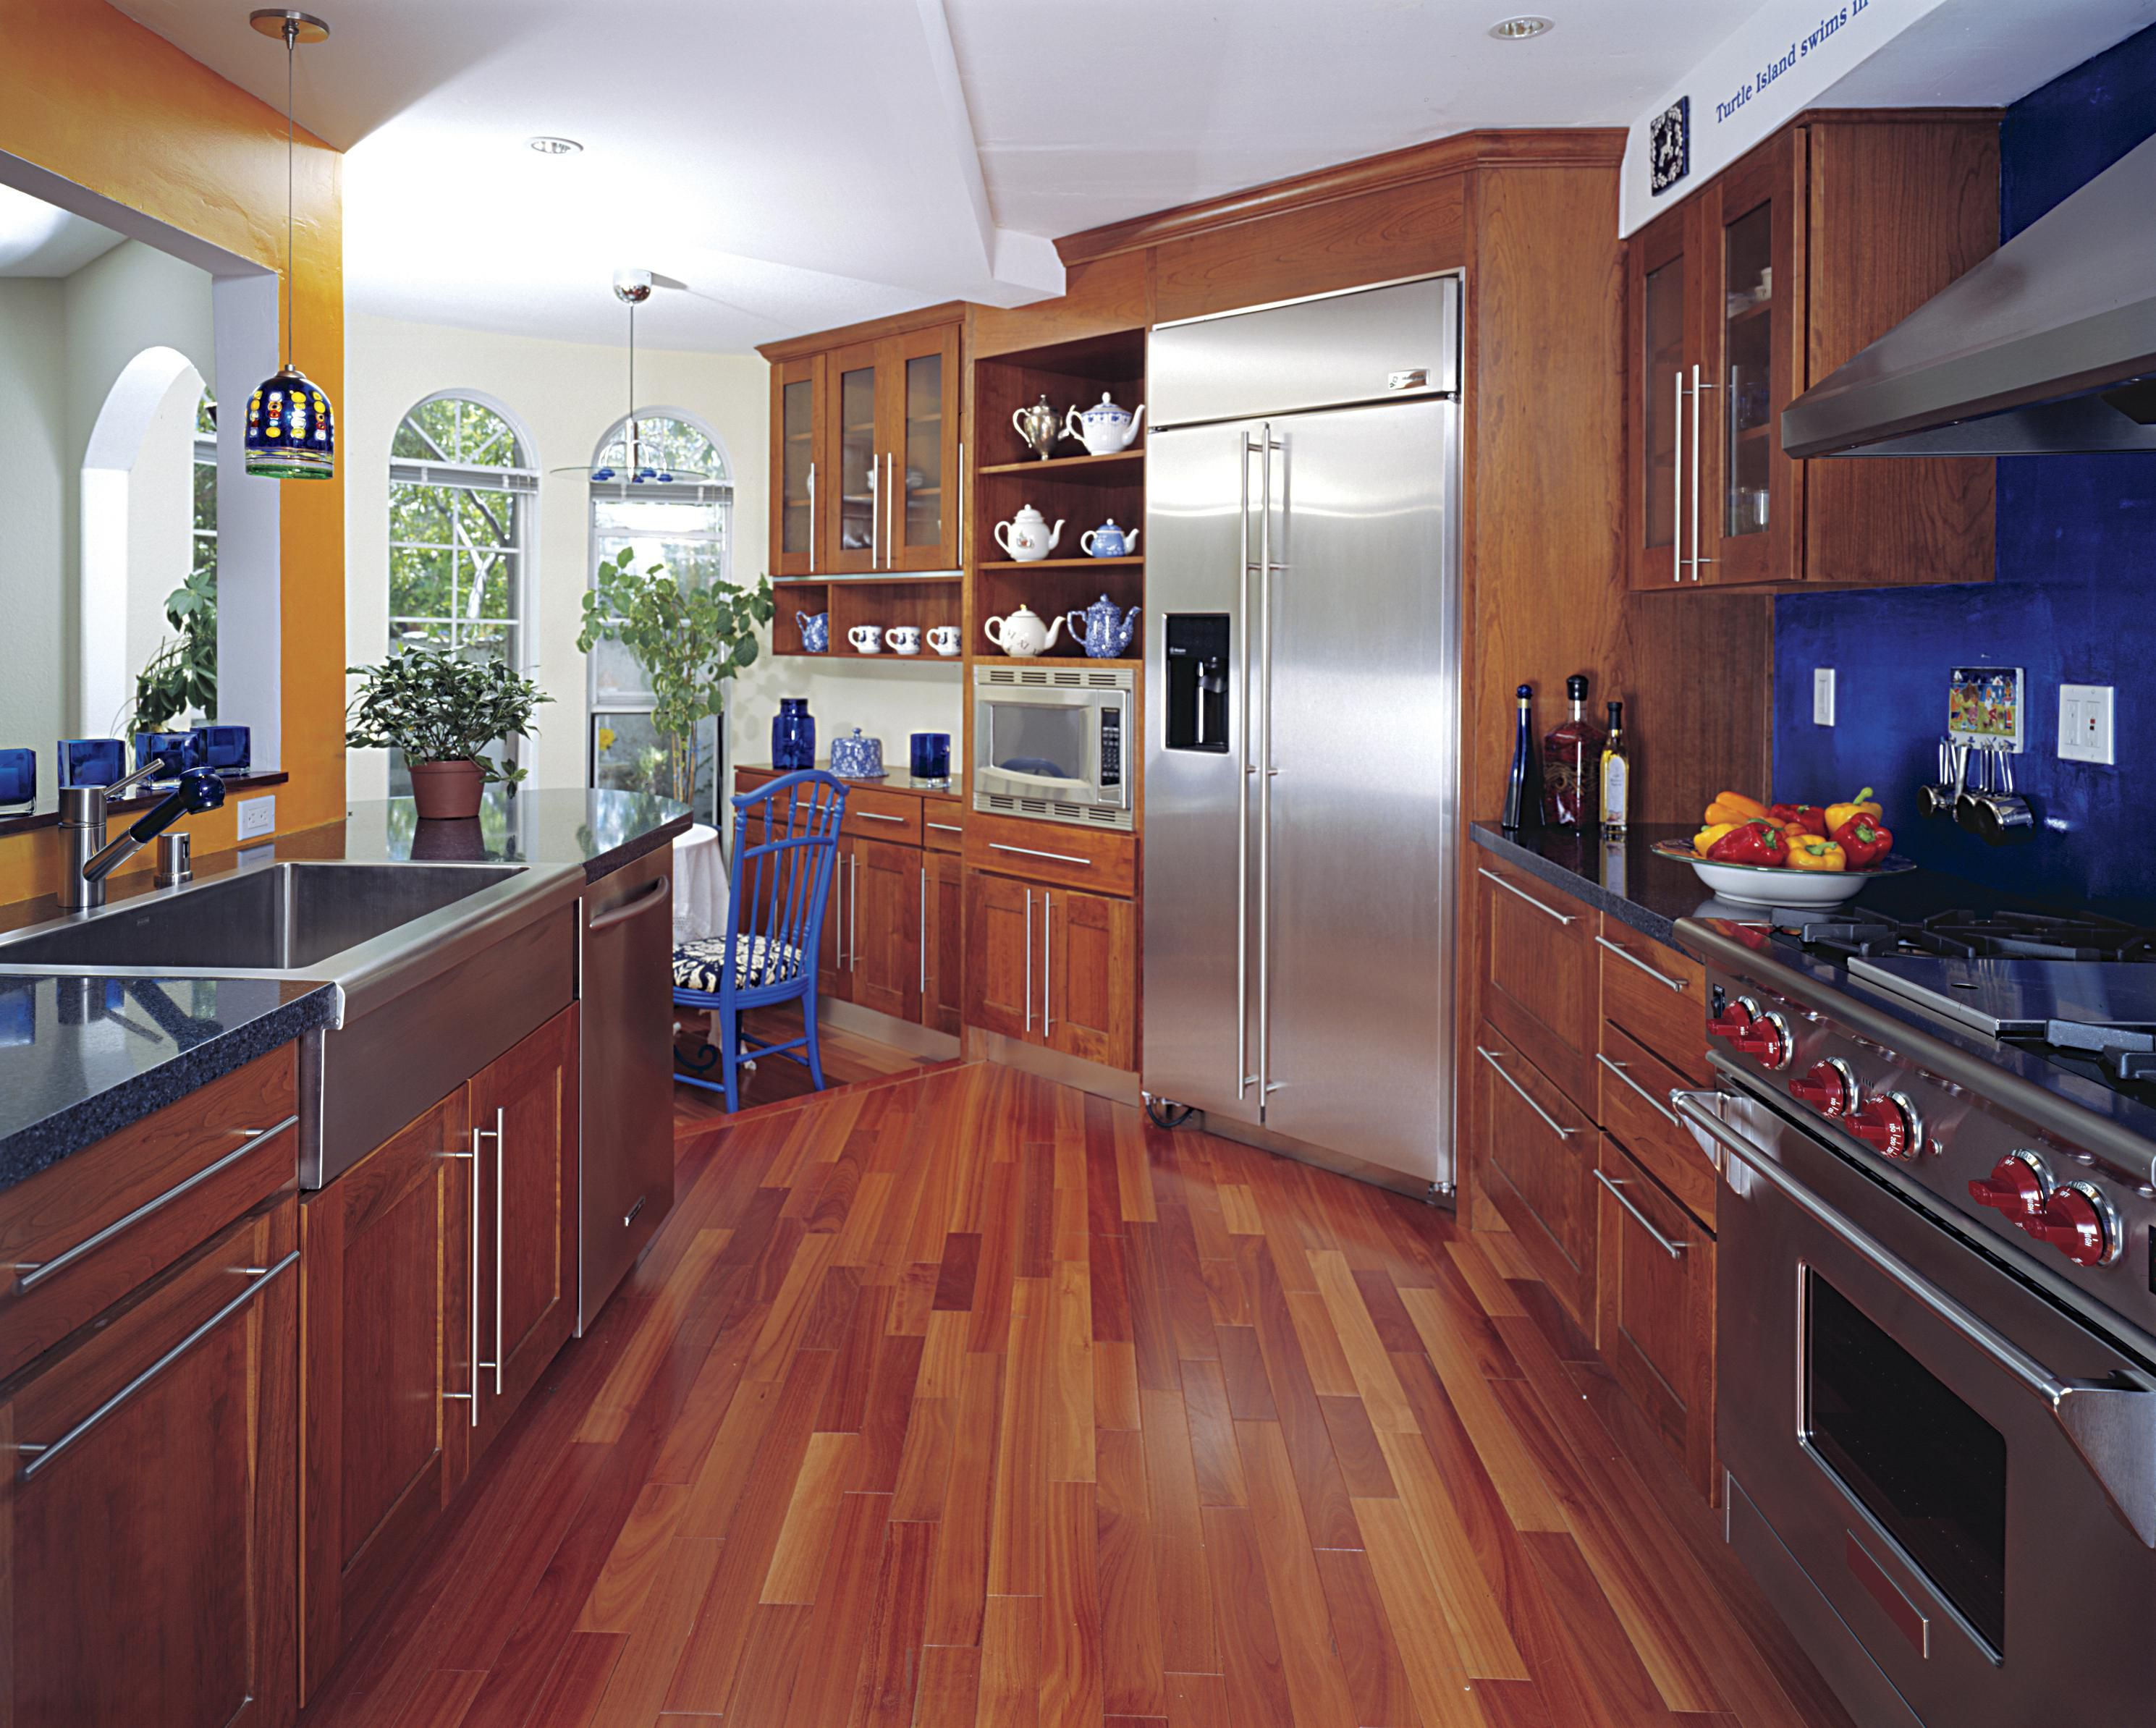 Uncategorized Wood In Kitchen Floors hardwood floor in a kitchen is this allowed